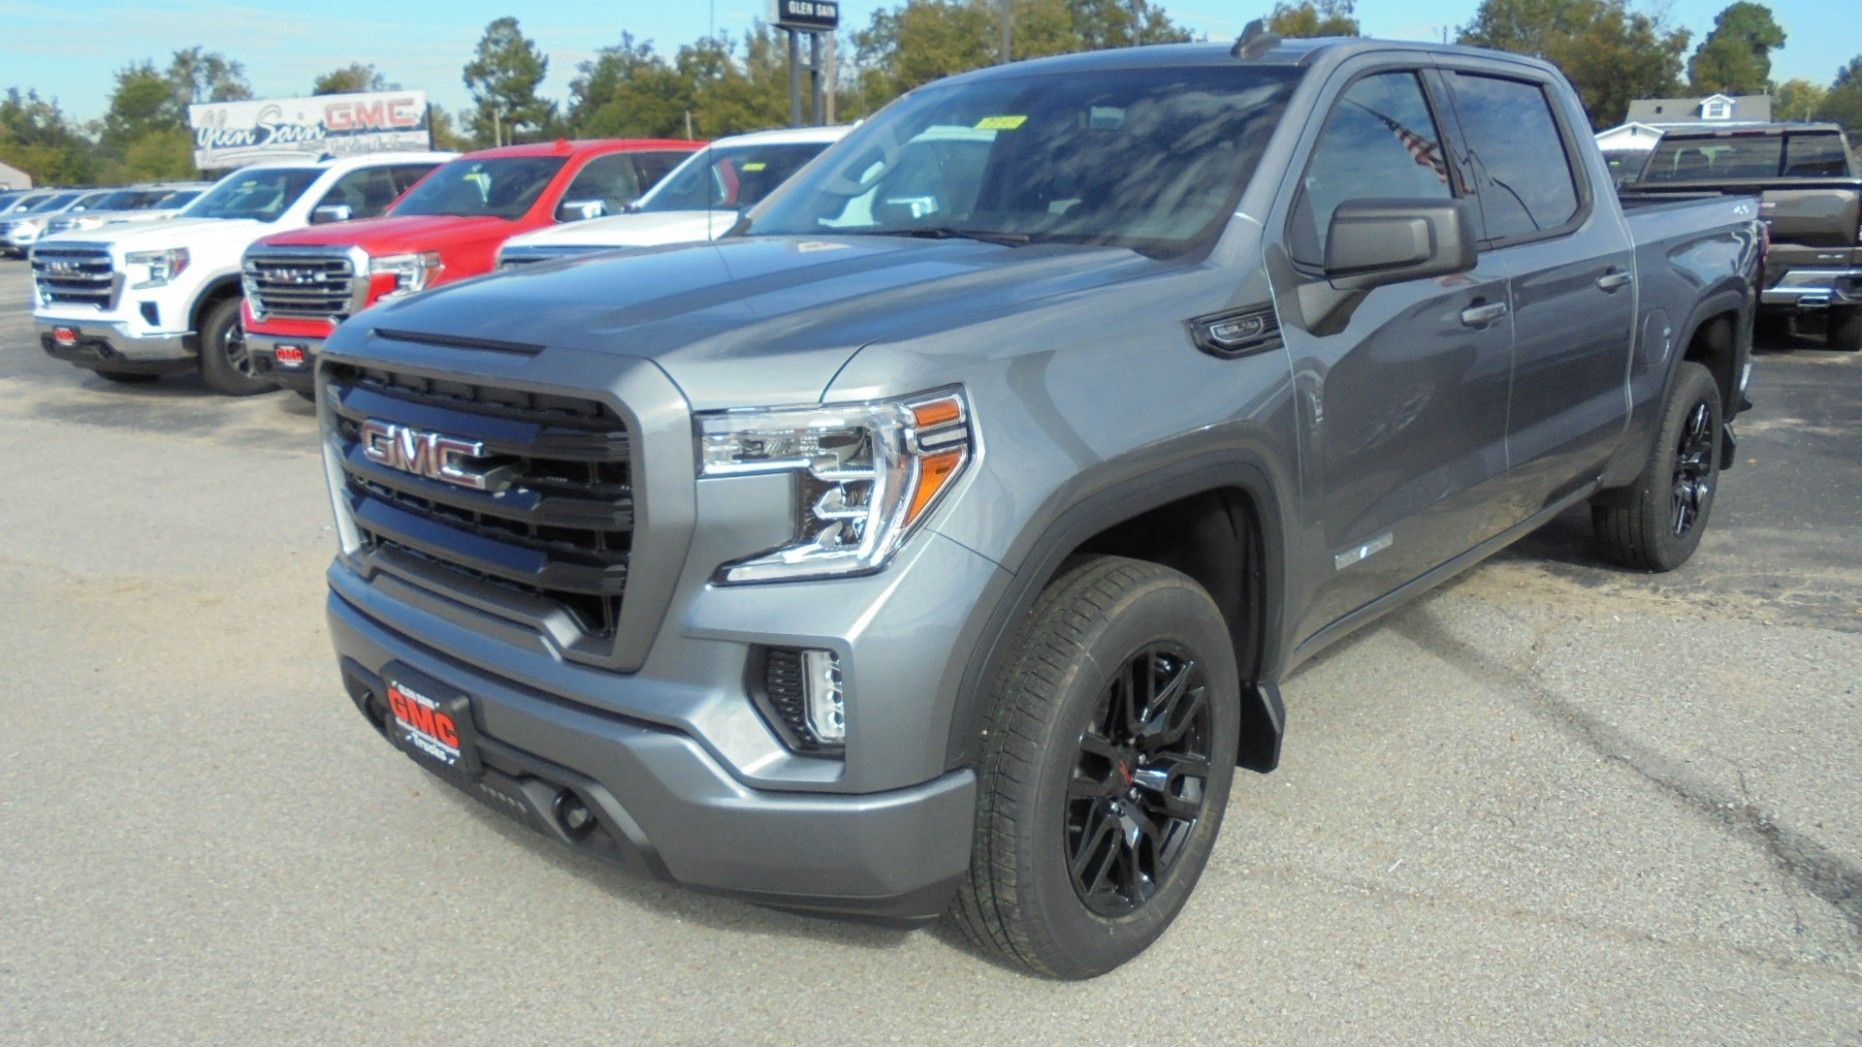 2020 Gmc Elevation X31 Performance And New Engine Gmc New Engine Gmc Sierra